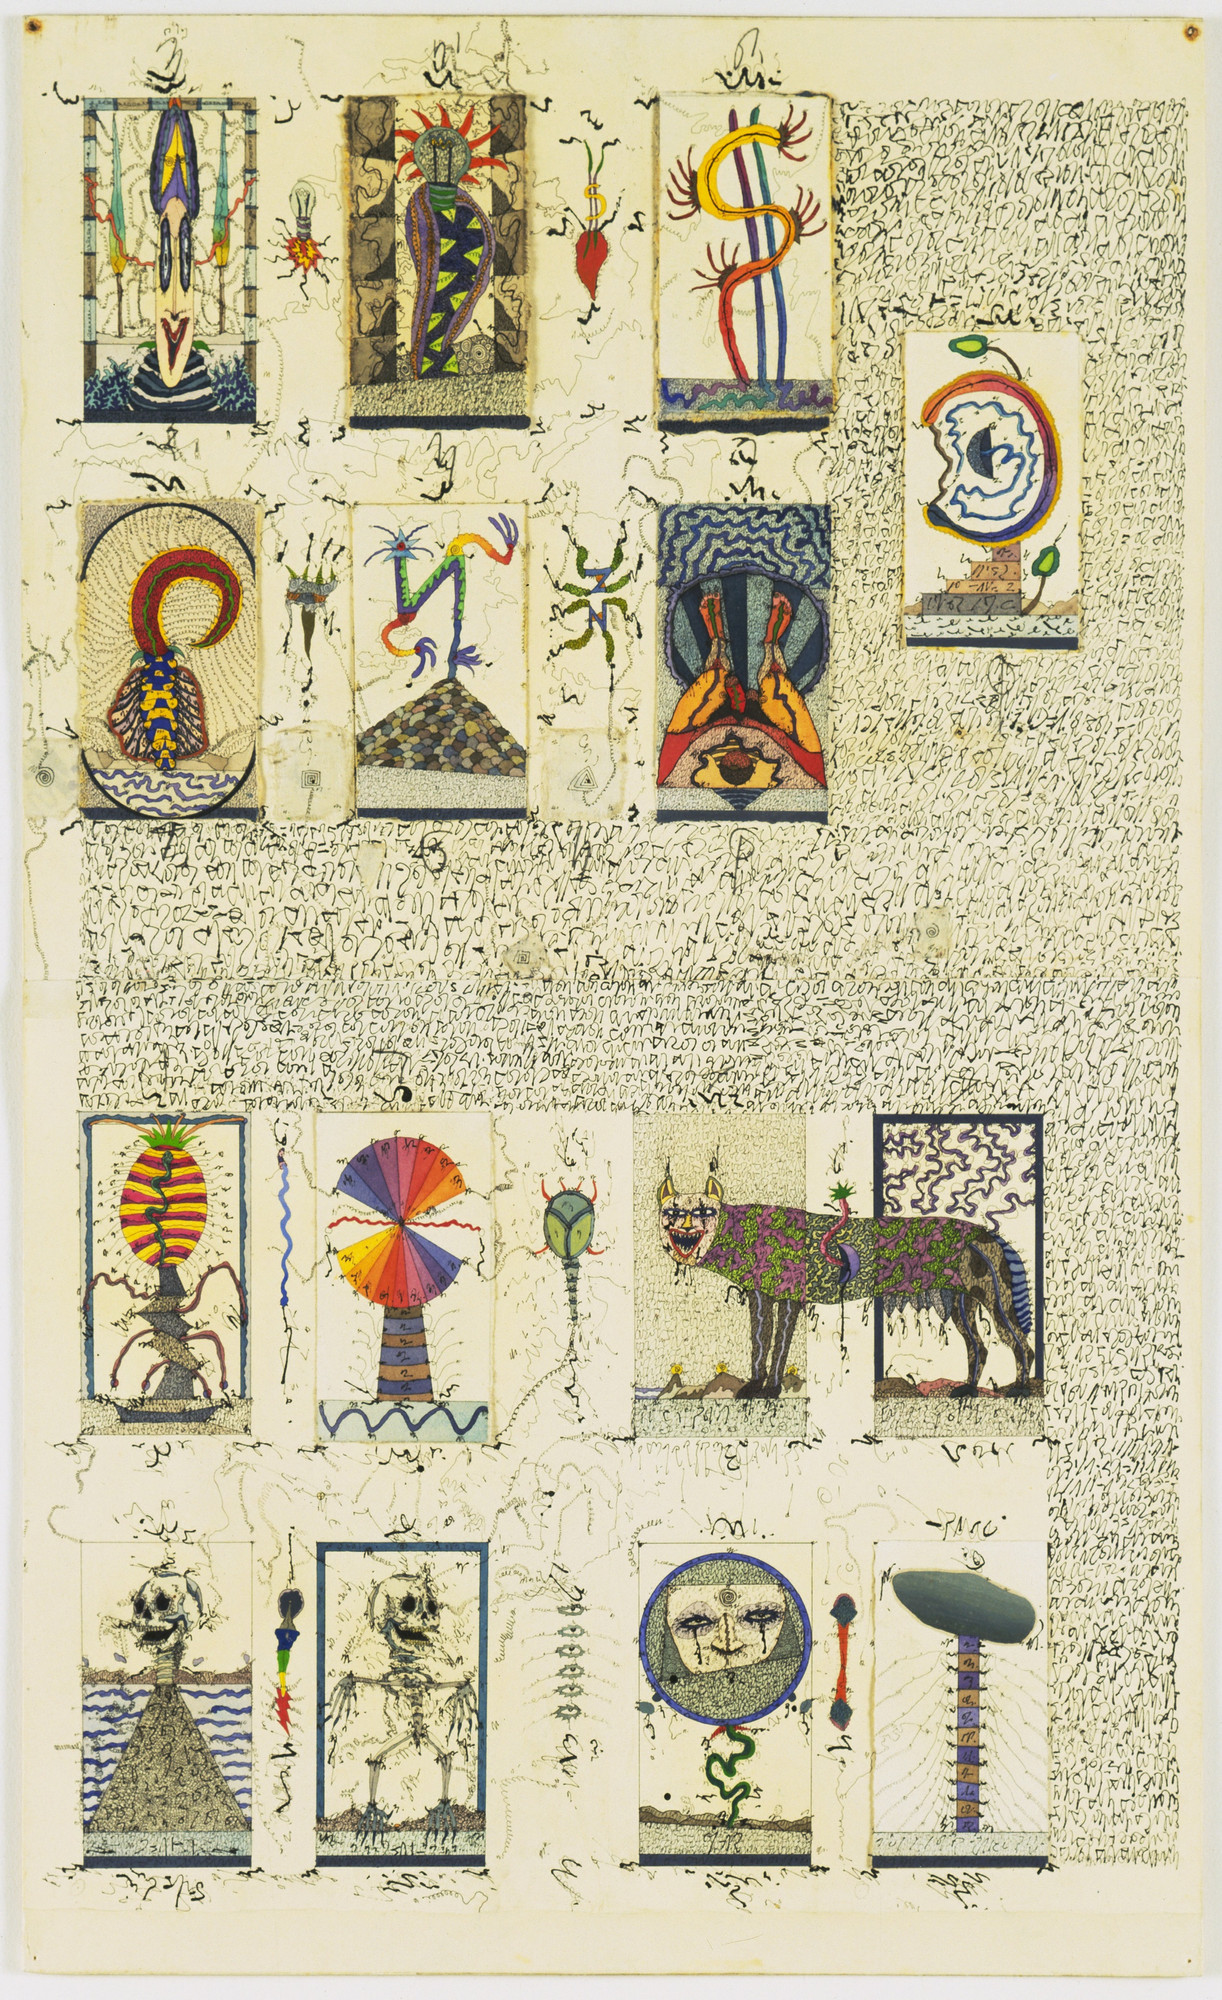 Zush (Alberto Porta). The Tarot Cards. 1976-79